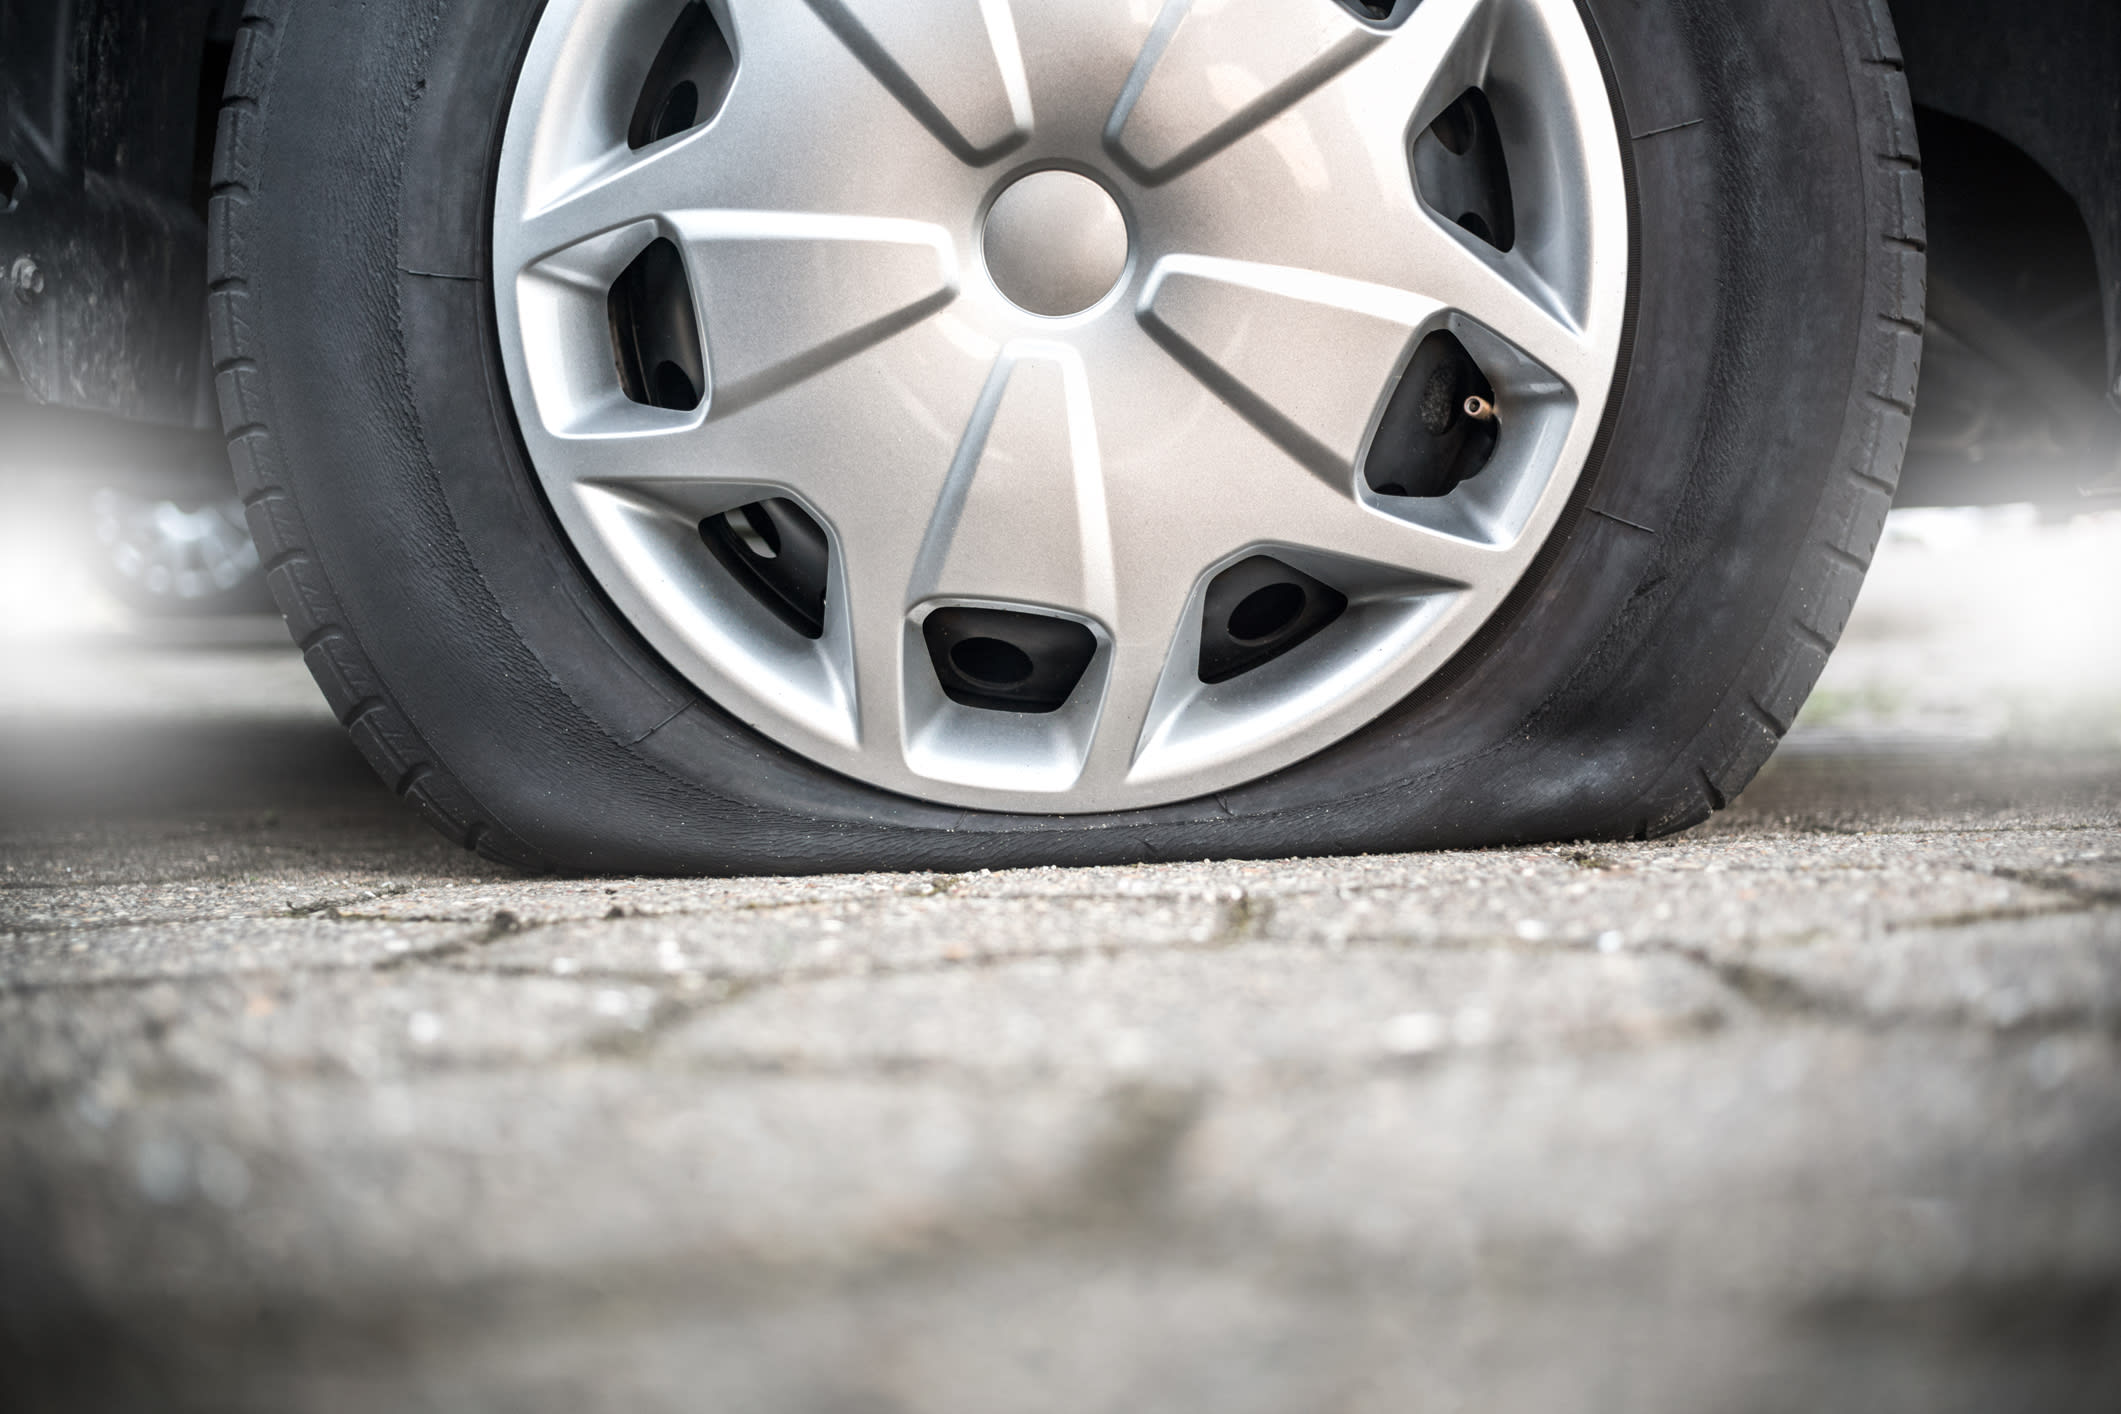 Tire Repair Near Me Open Sunday >> Flat Tire 7 Reasons Not To Repair It With Fix A Flat Or